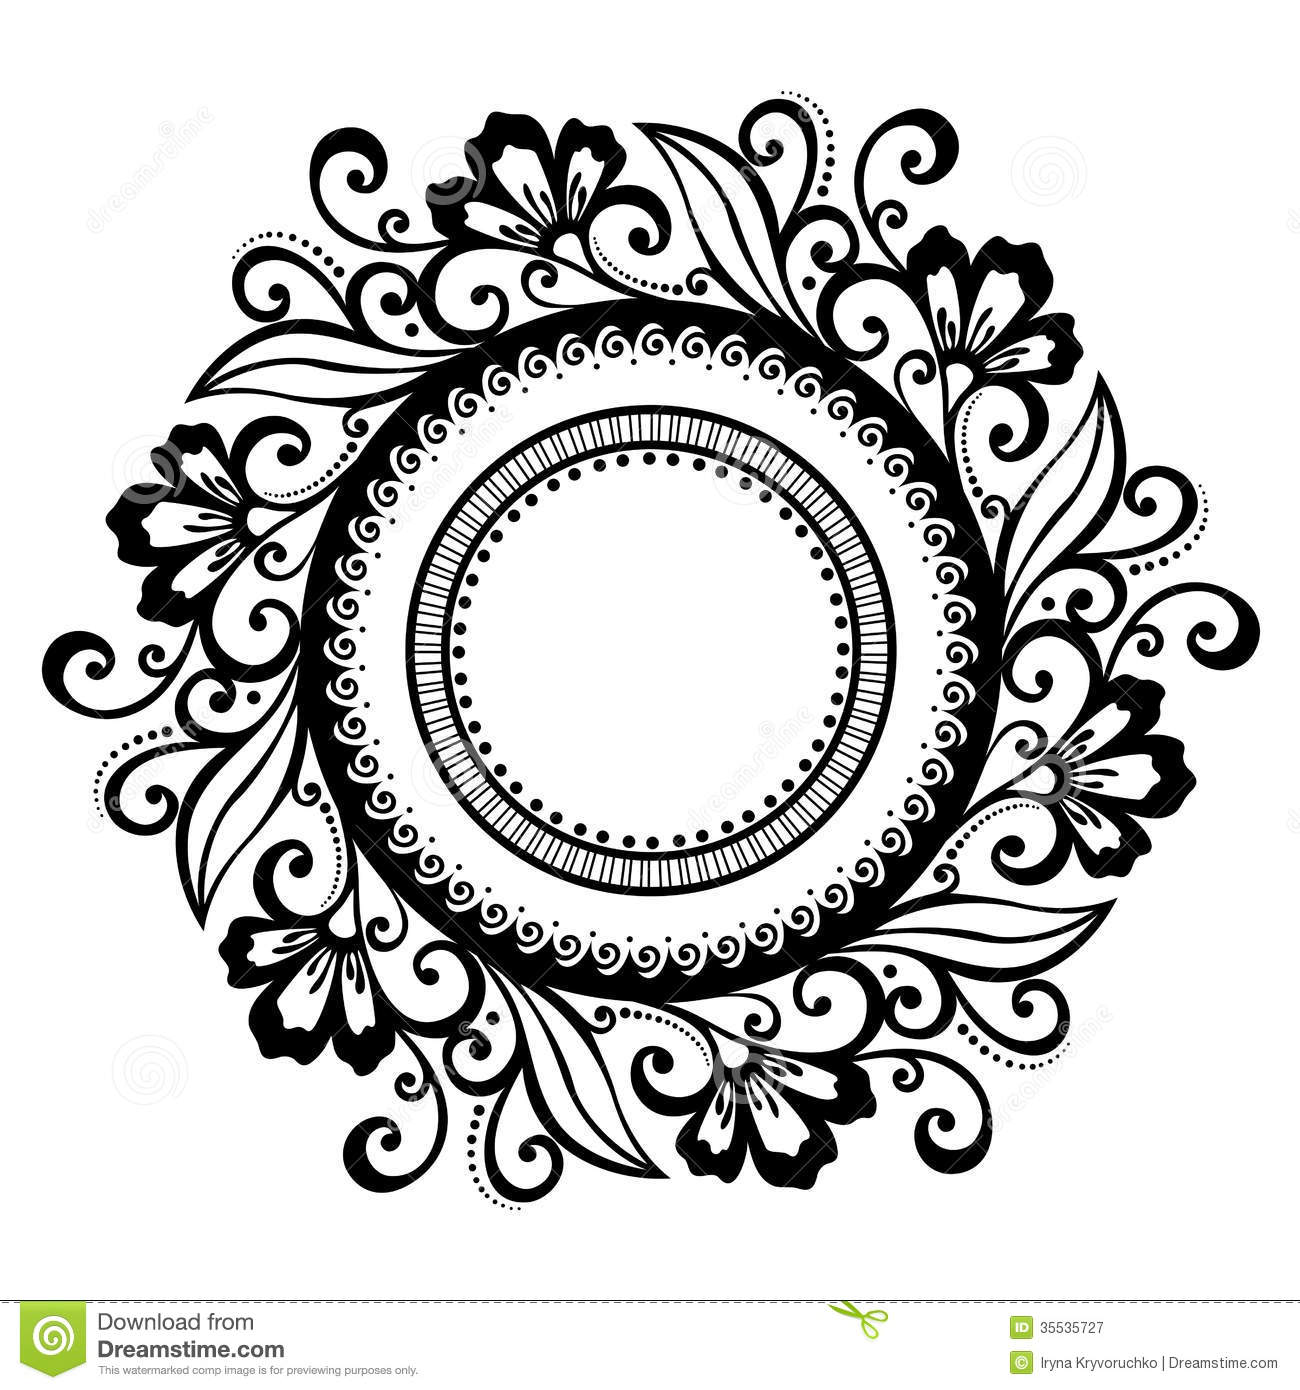 Line Art Flower Vector Free Download : Beautiful deco floral circle vector stock